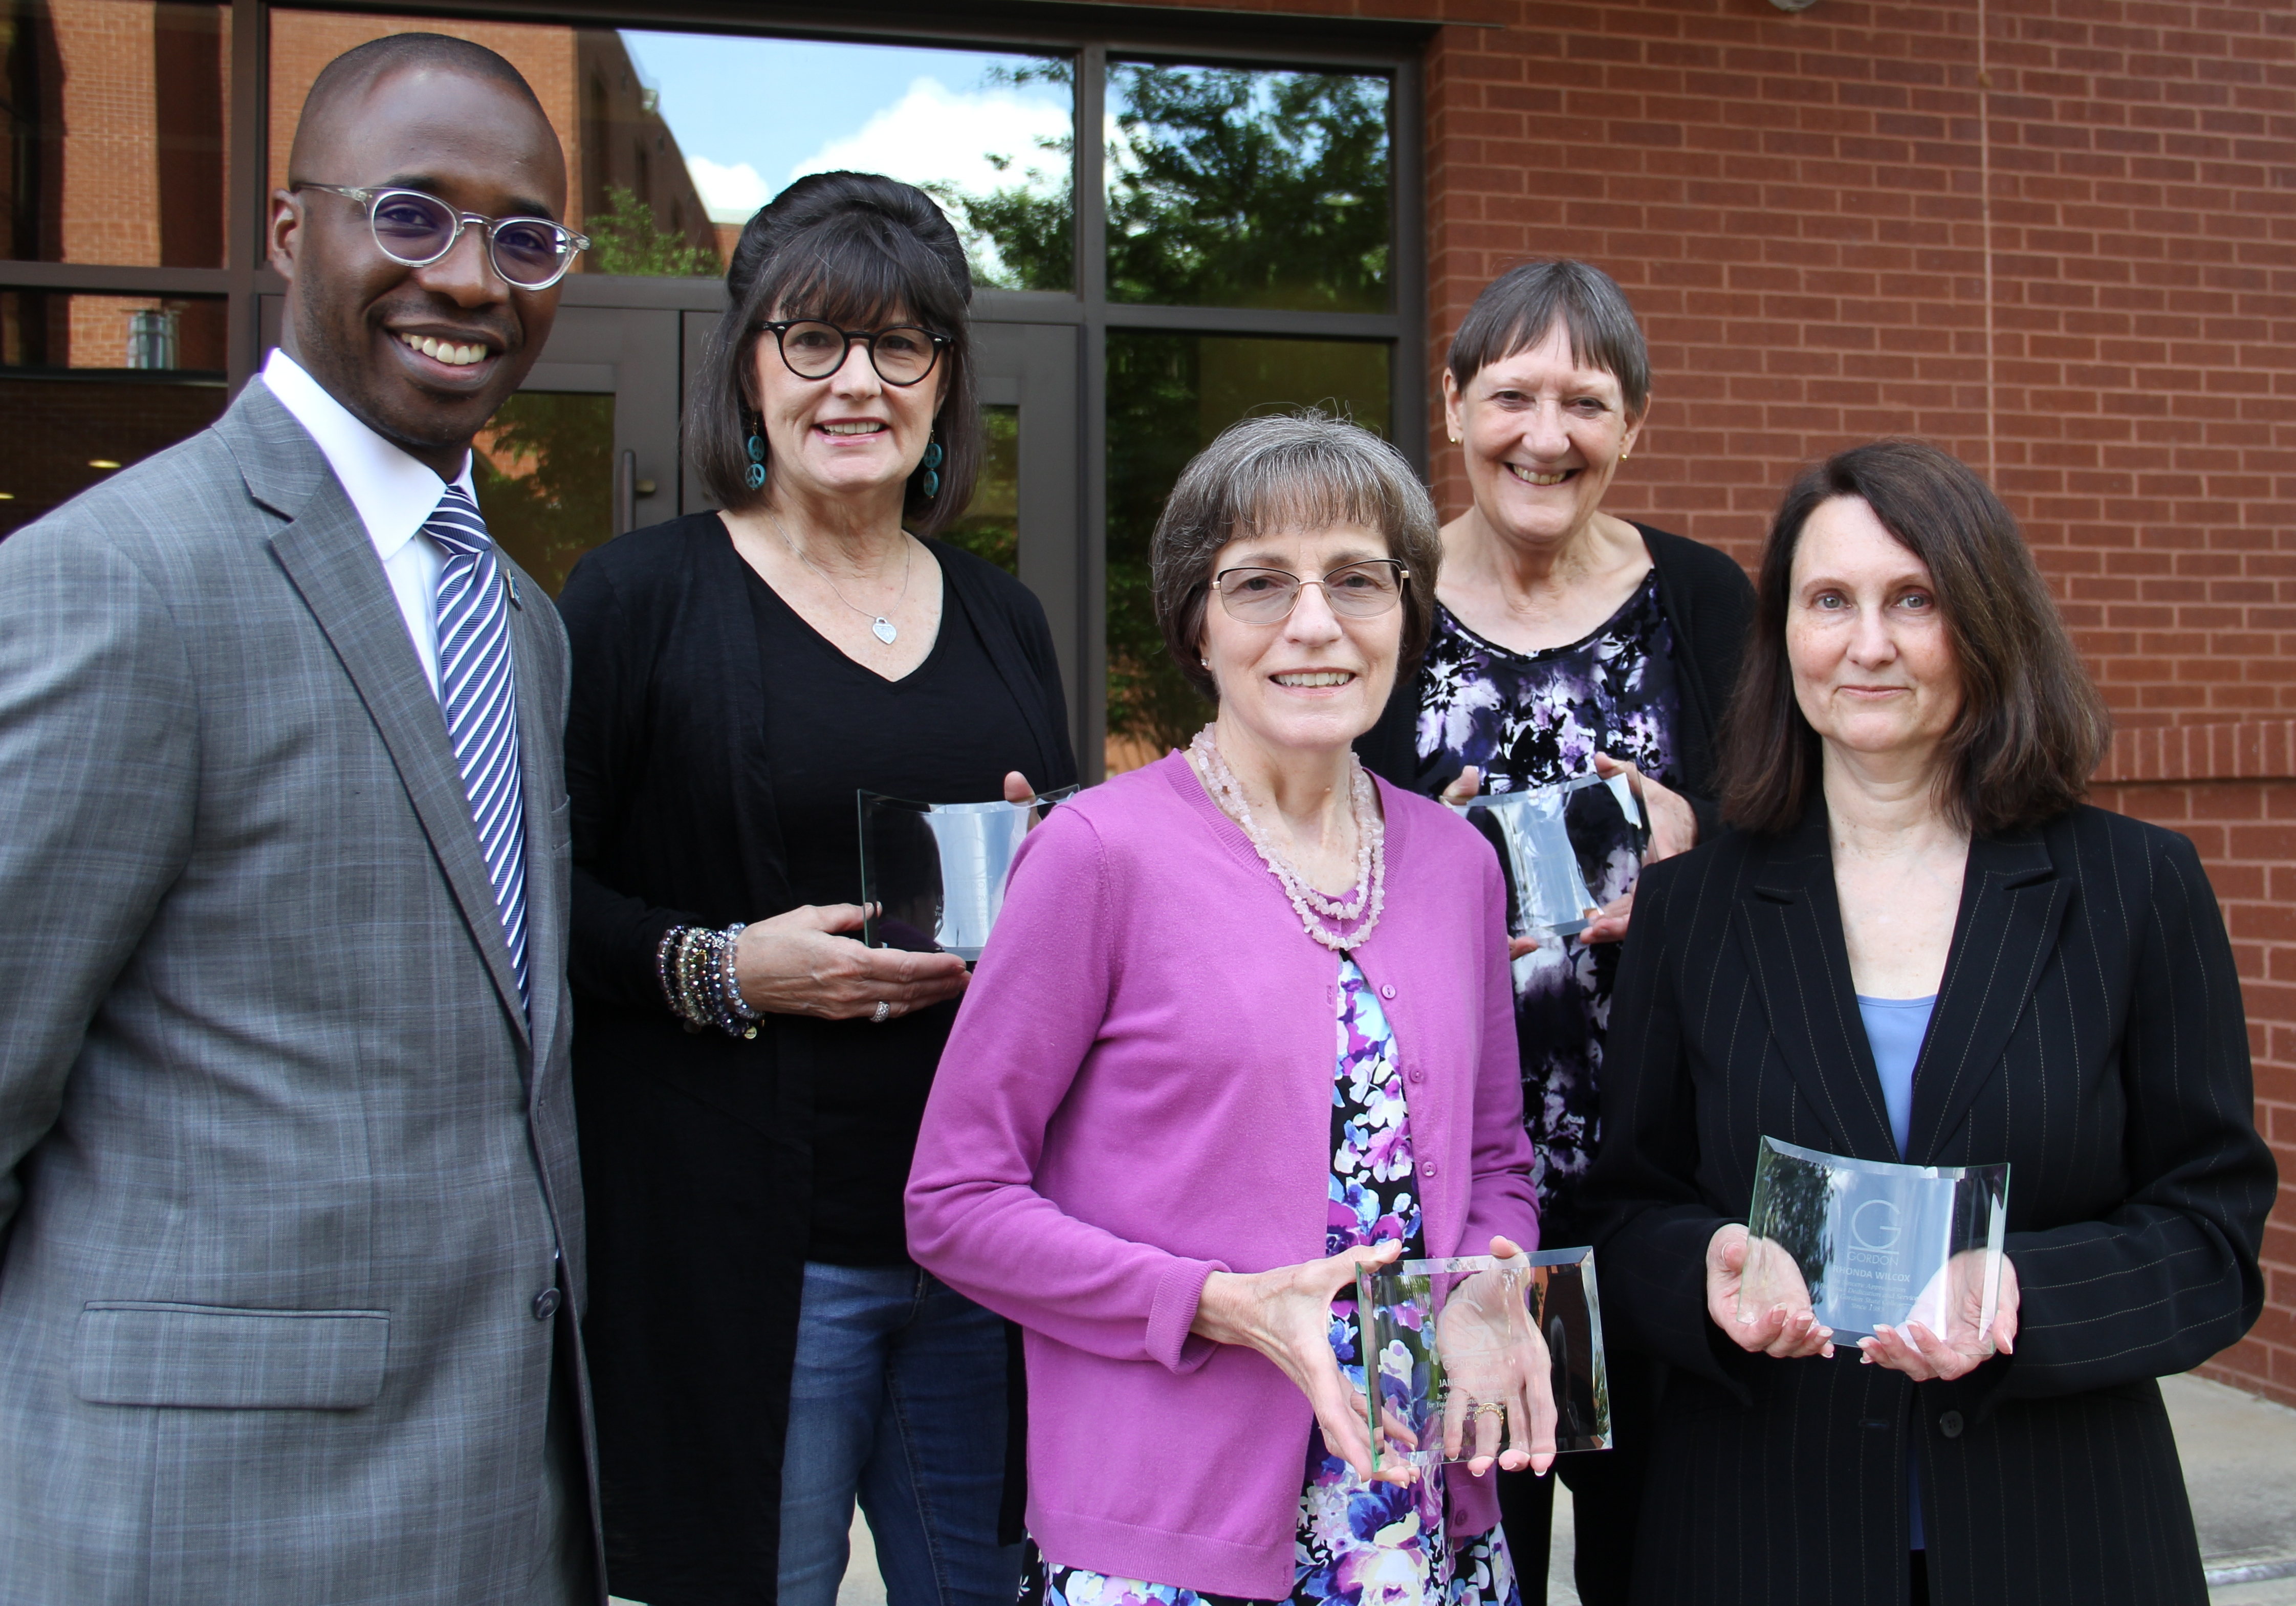 GSC President Dr. Kirk A. Nooks, Laura Bowen, Janet Barras, Anne Purvis and Rhonda Wilcox